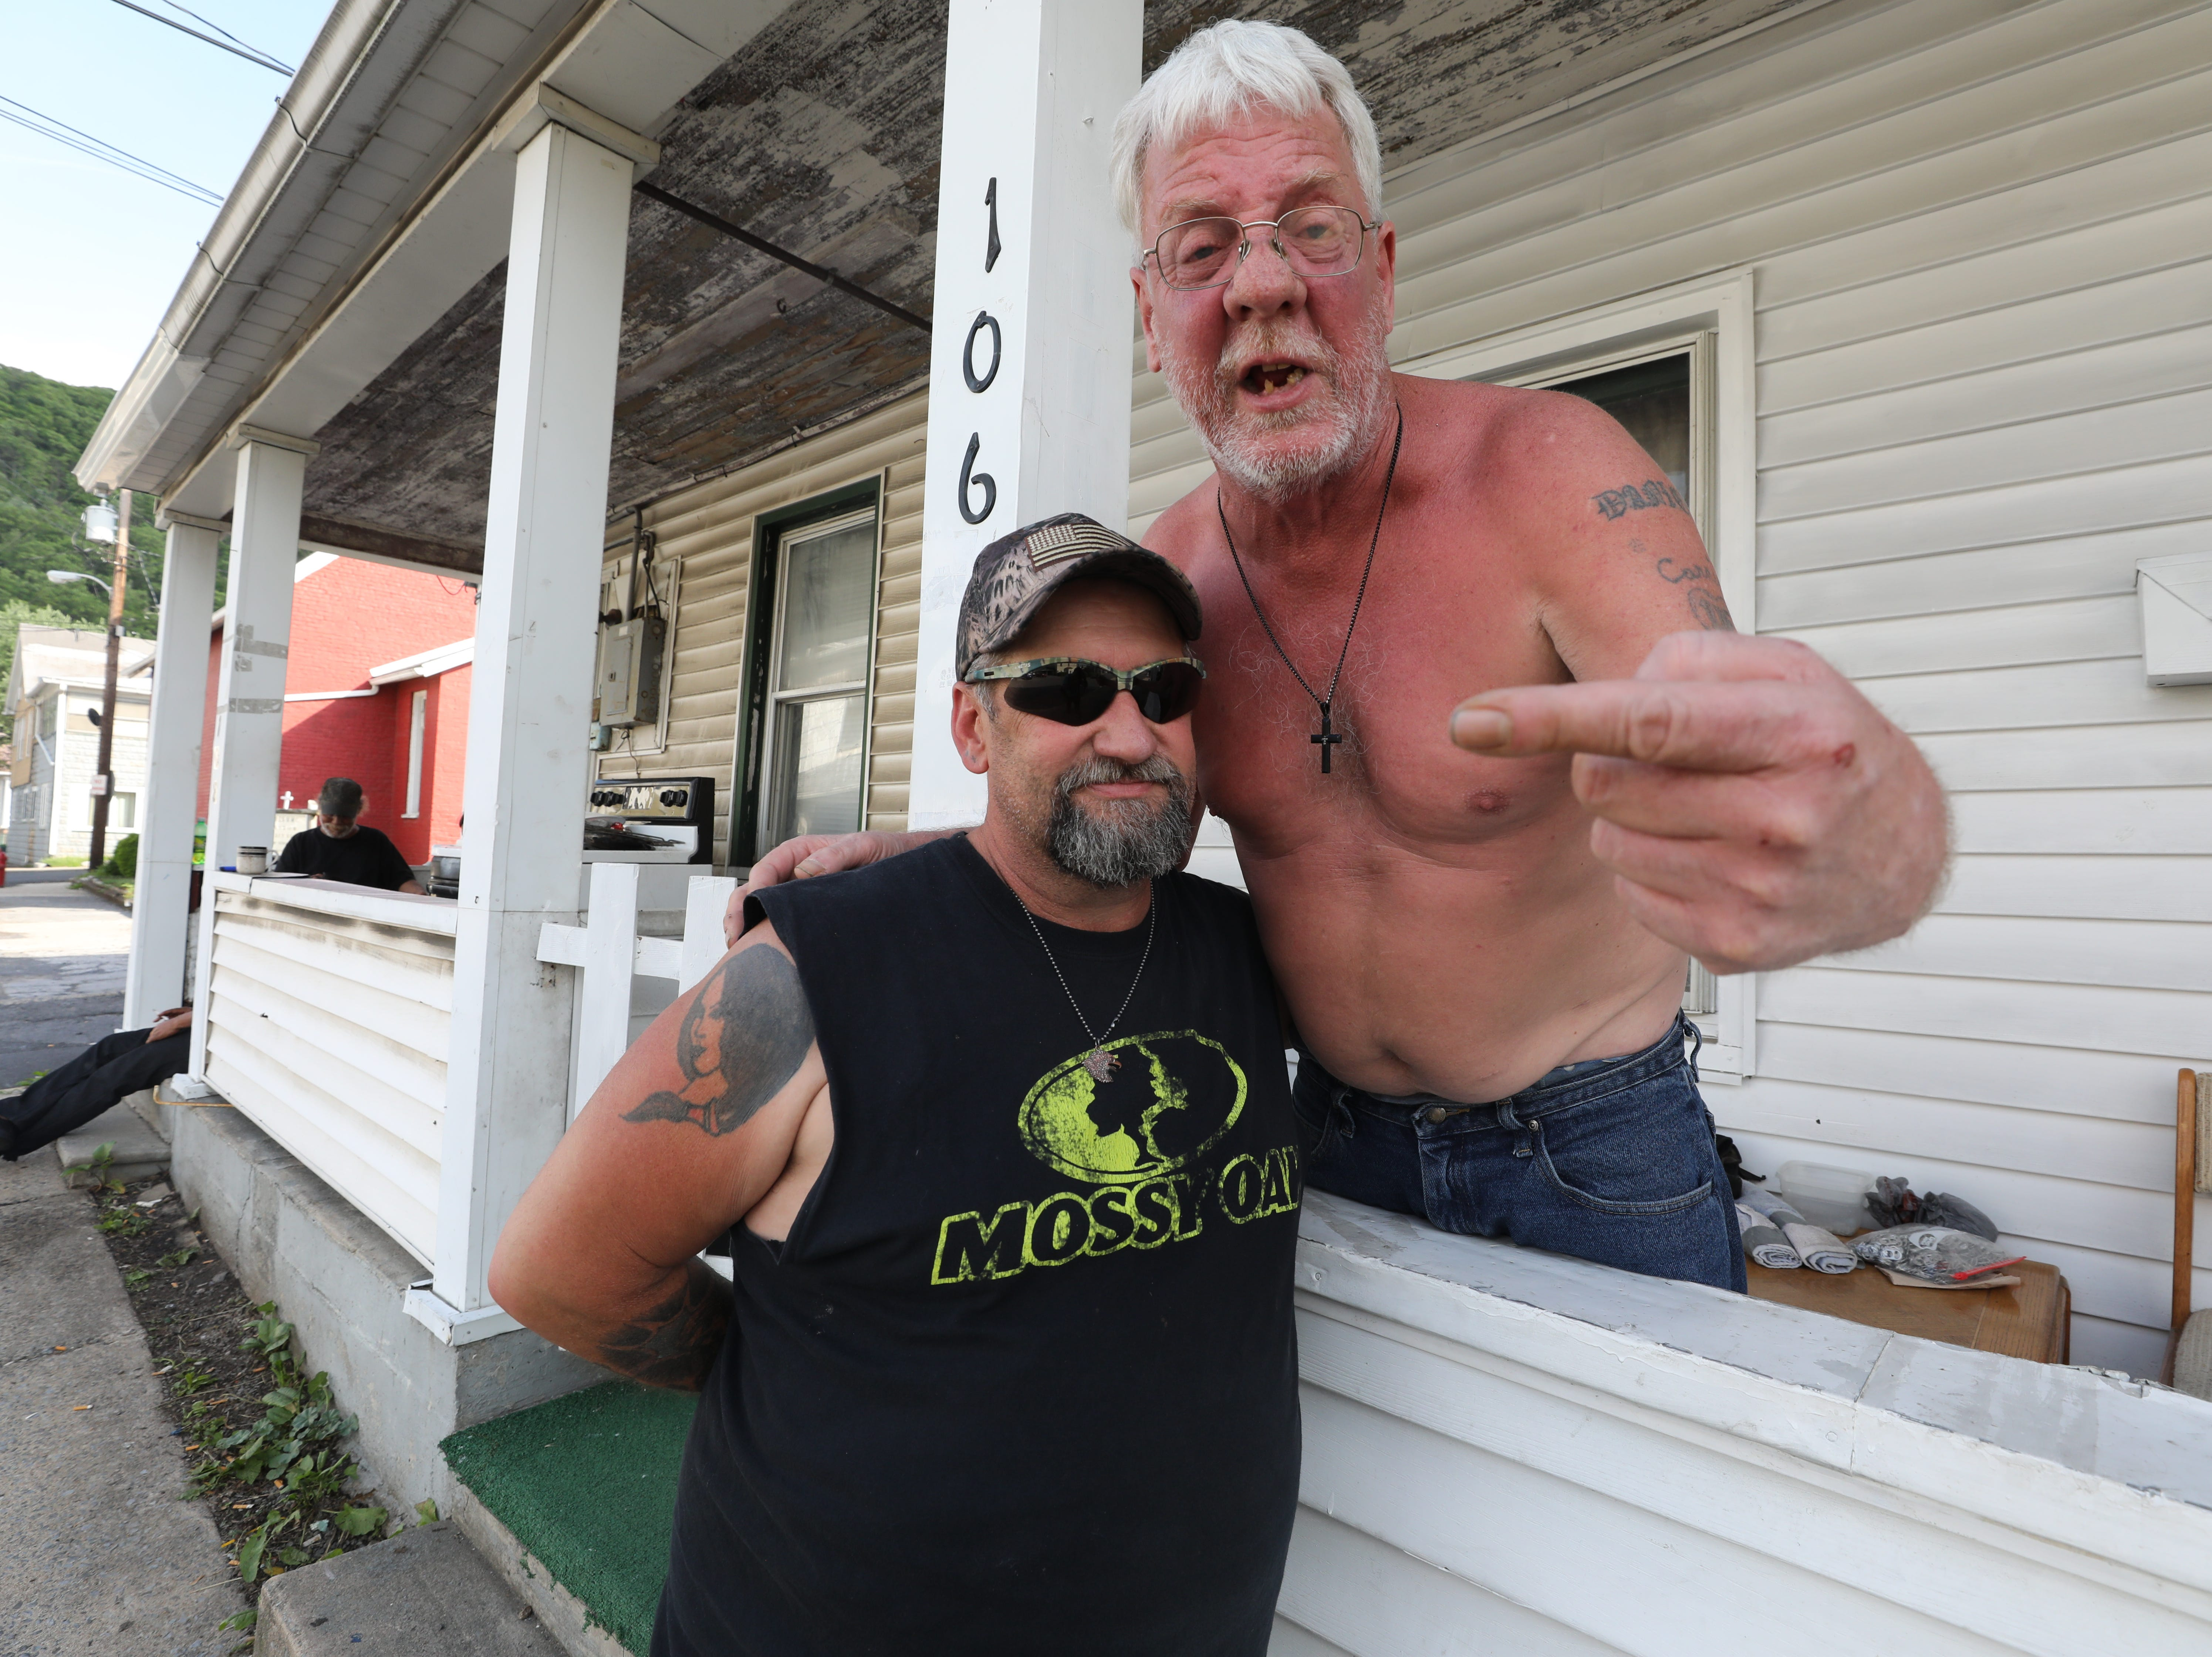 Timothy McCusker Sr. and his friend Danny McCarty are both unemployed and spent this afternoon drinking beer on the porch of McCarty's home. The one and a half bedroom apartment costs $450 per month.